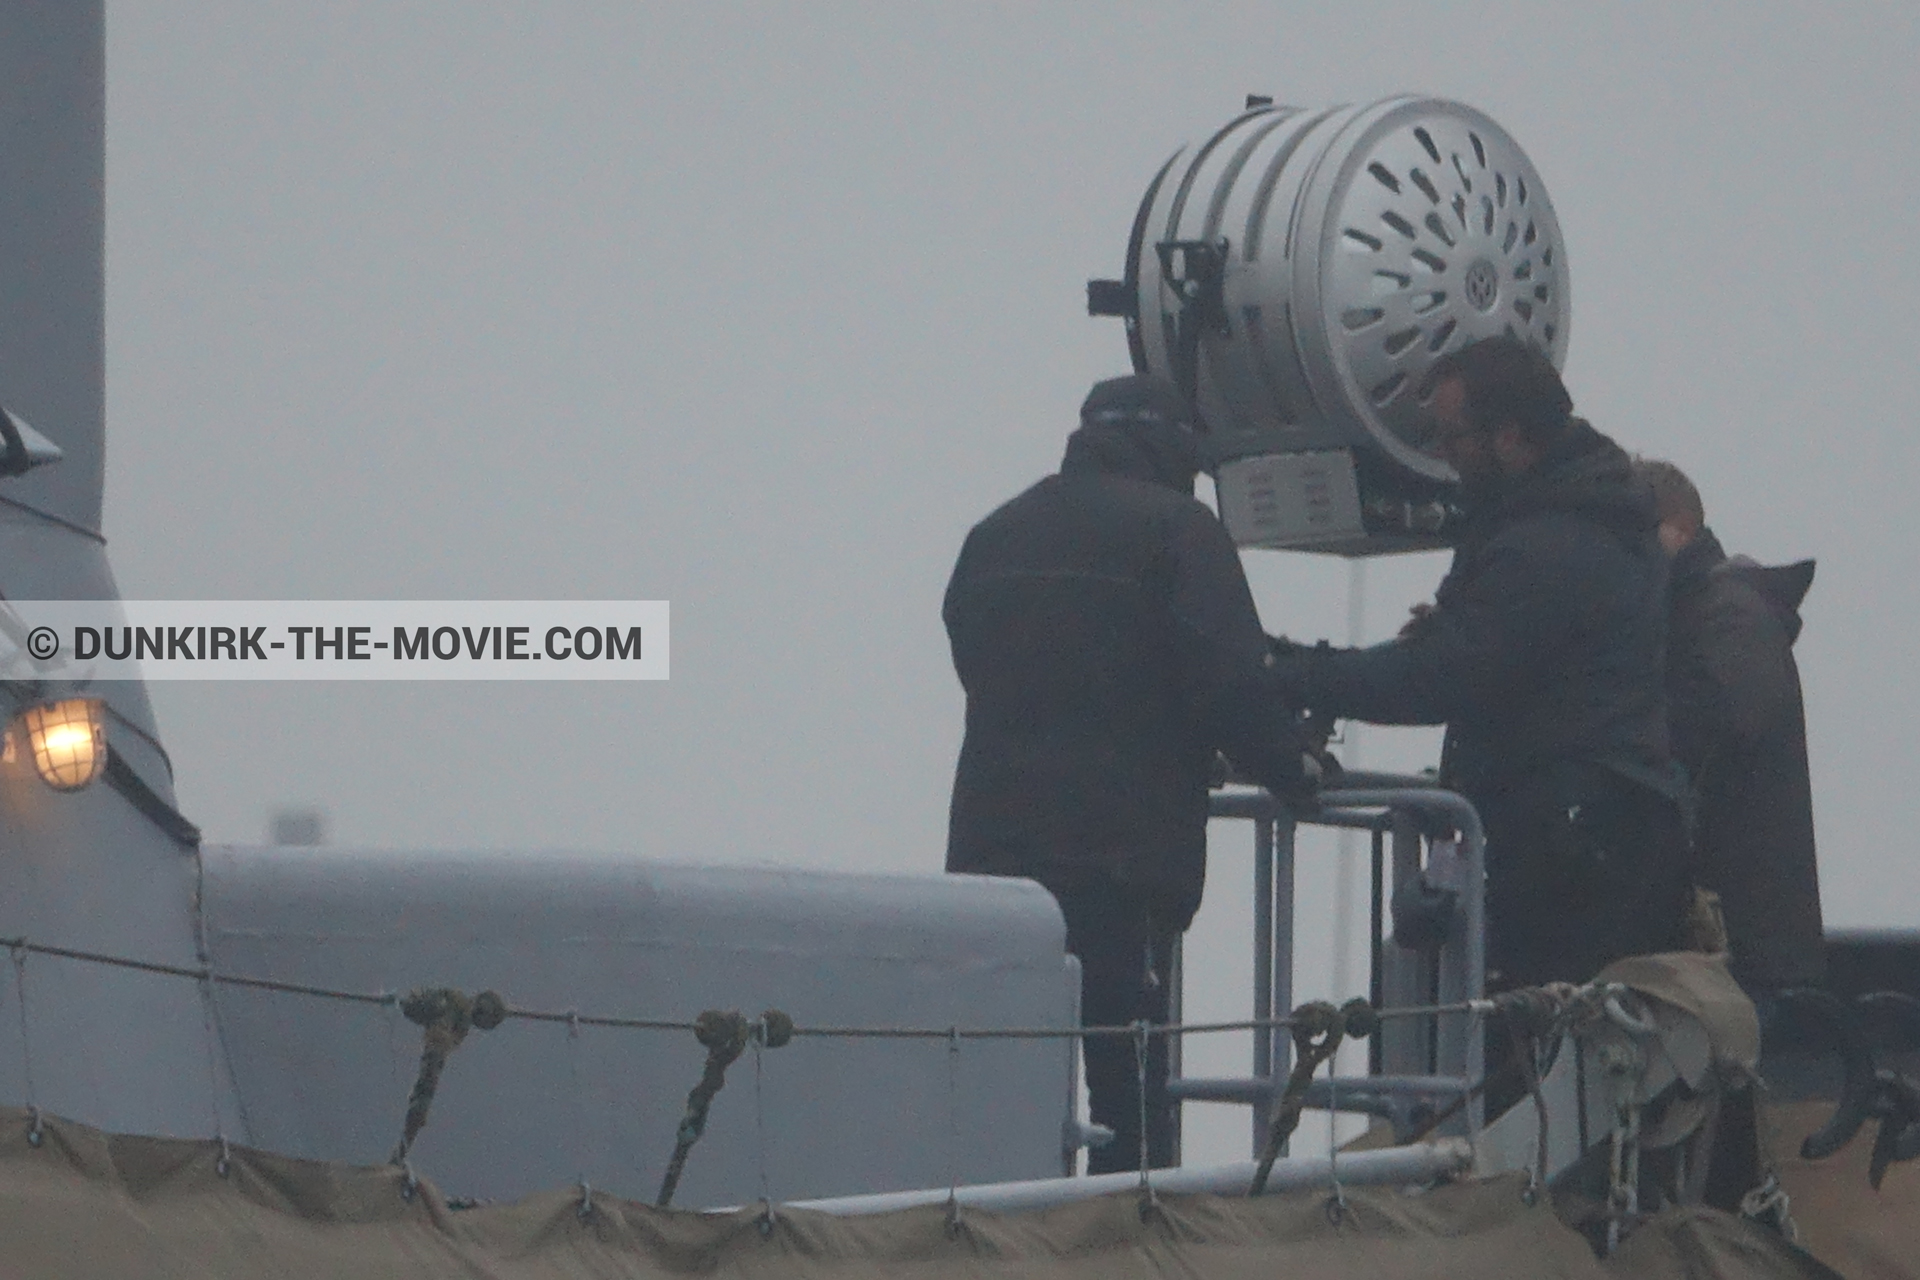 Photo on canvas number 542, of the filming of the film Dunkirk